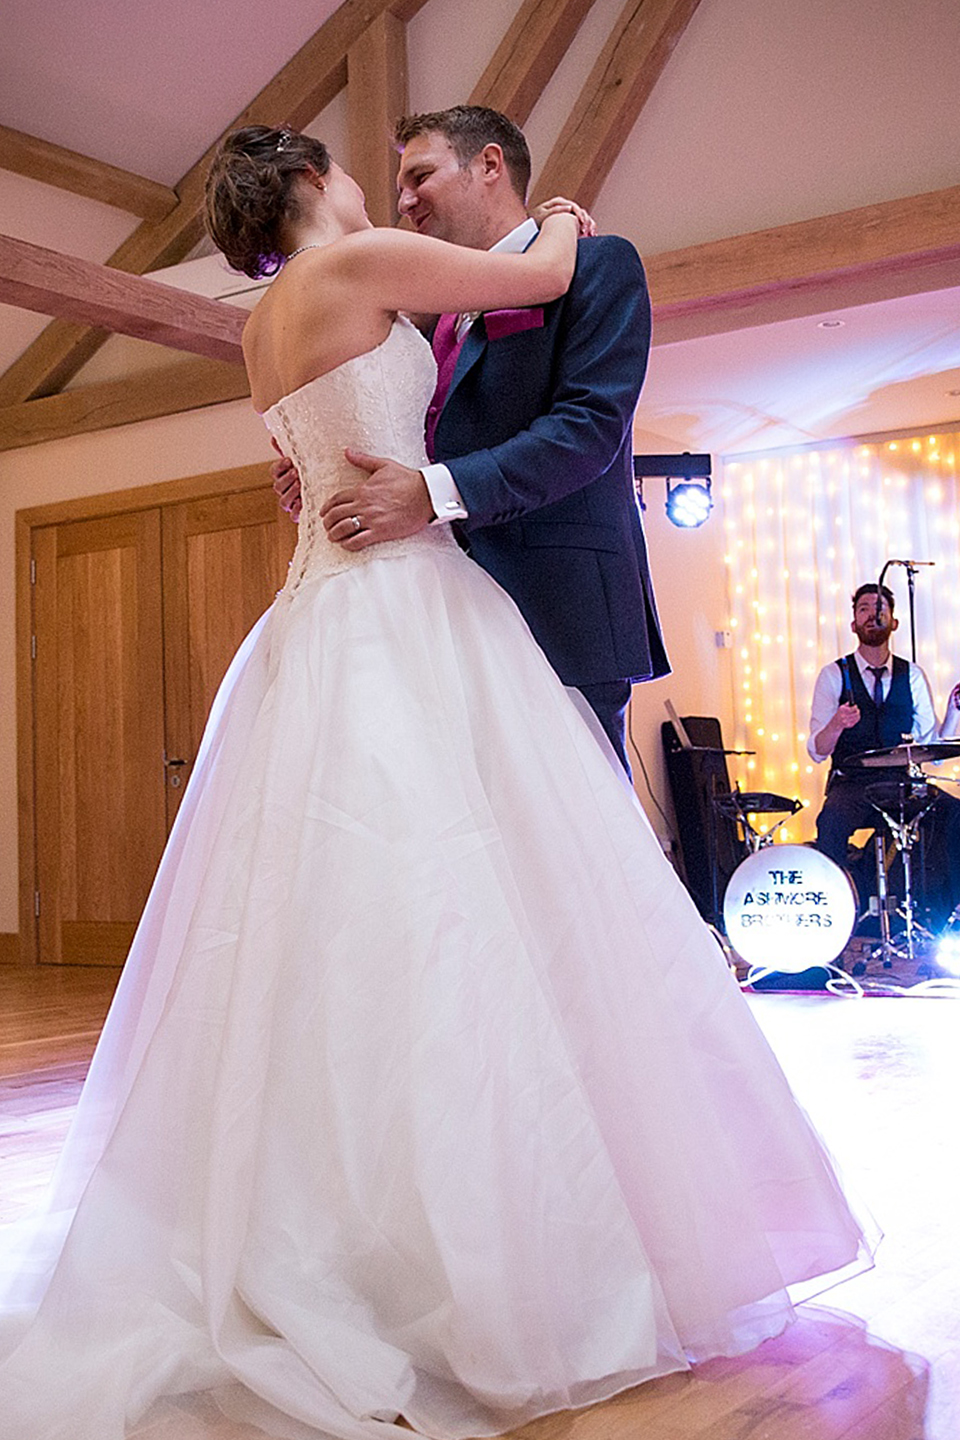 The newlyweds have their first dance as husband and wife inside the stunning barn wedding venue